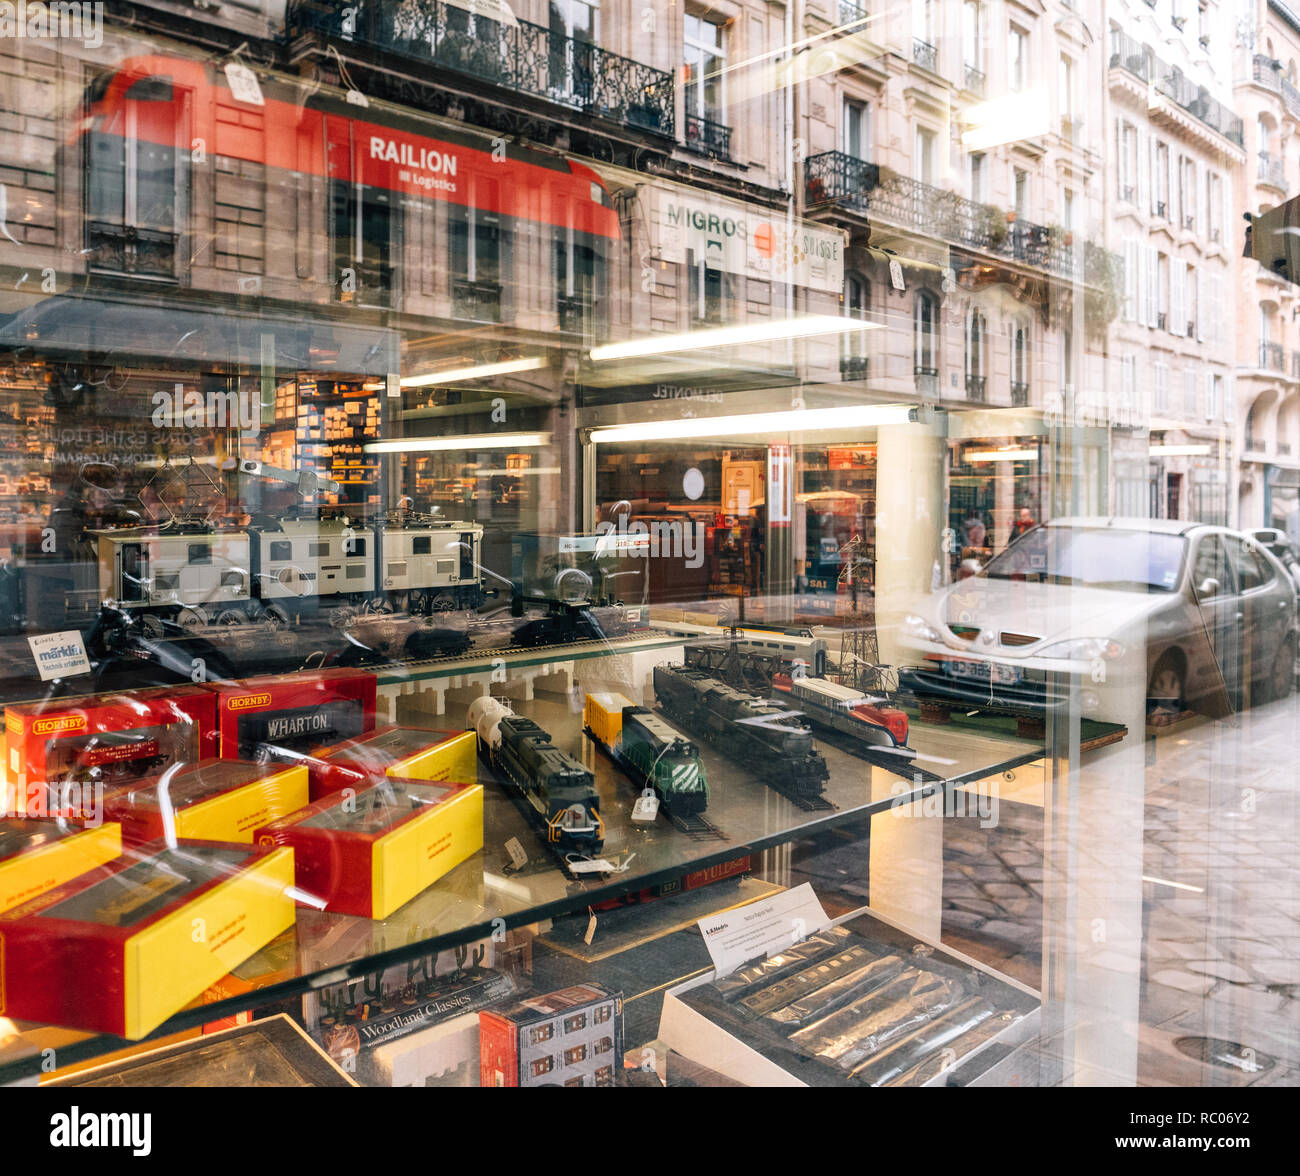 PARIS, FRANCE - JAN 30, 2018: Reflection Store window facade selling multiple toy collectible model trains featuring all railways in the world in central Paris, France Stock Photo